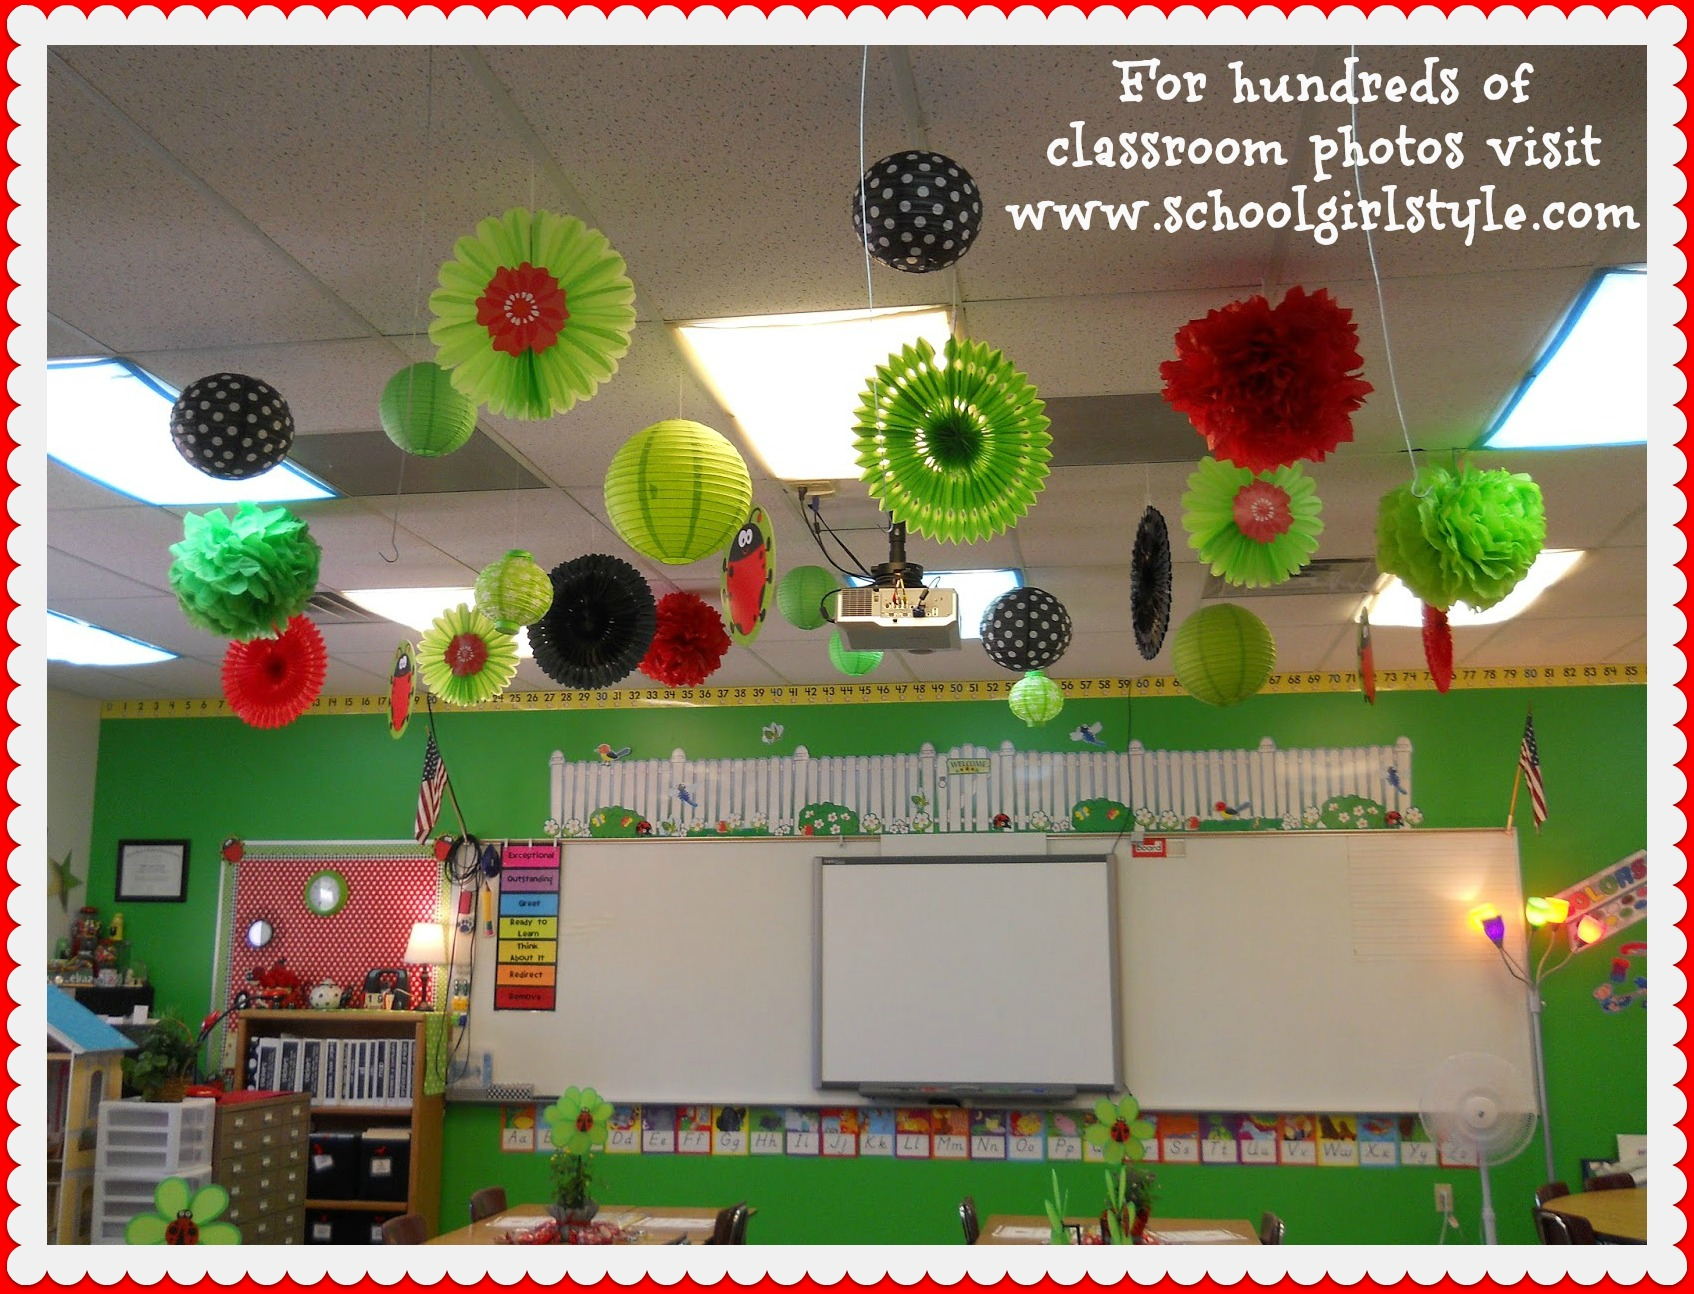 Ladybug Classroom Decoration Ideas ~ Ladybug classroom decorations pictures to pin on pinterest